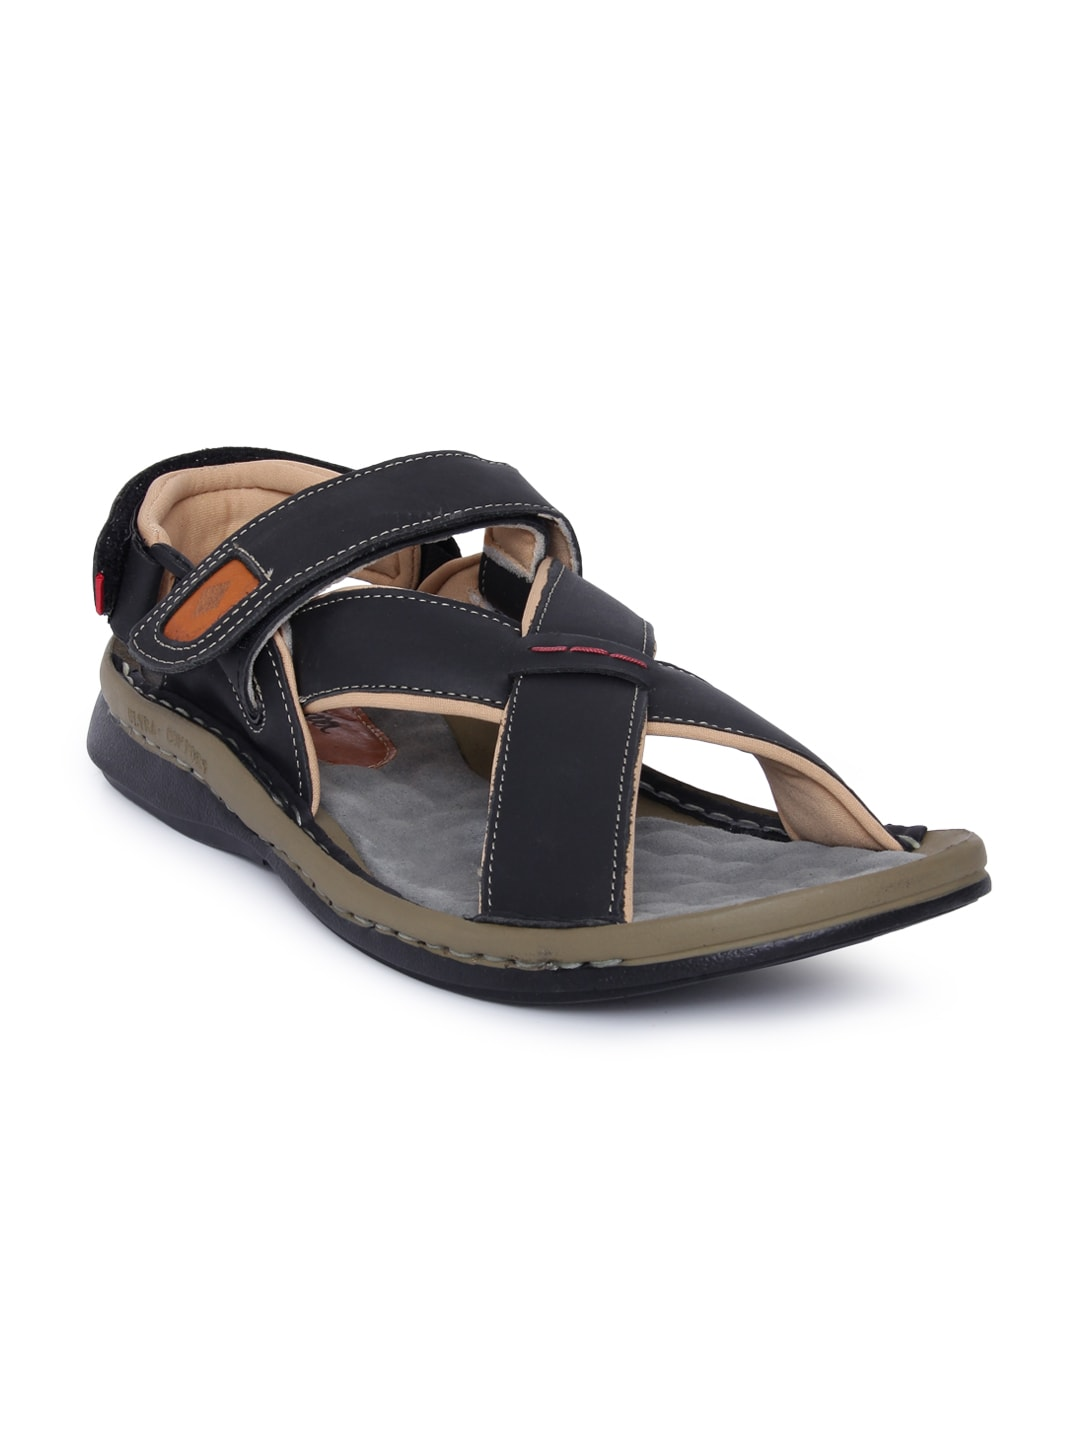 712be5d81ed7 Mcfallstyles Ext - Buy Mcfallstyles Ext online in India